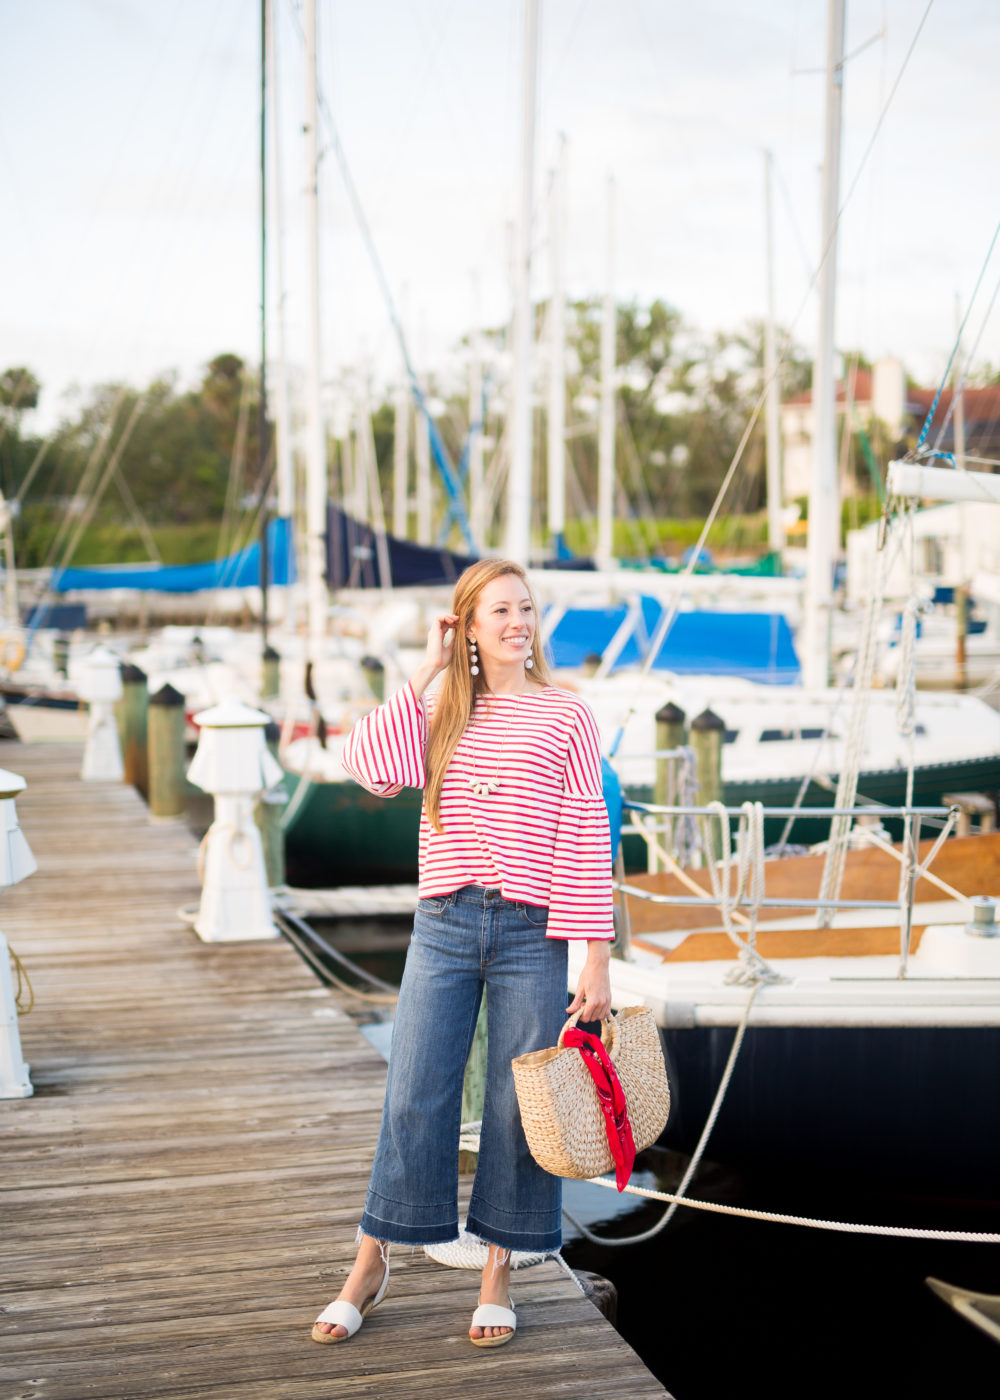 A Classic Striped Look for Fall, Wearing Wide Leg Pants + Striped Top | Sunshine Style